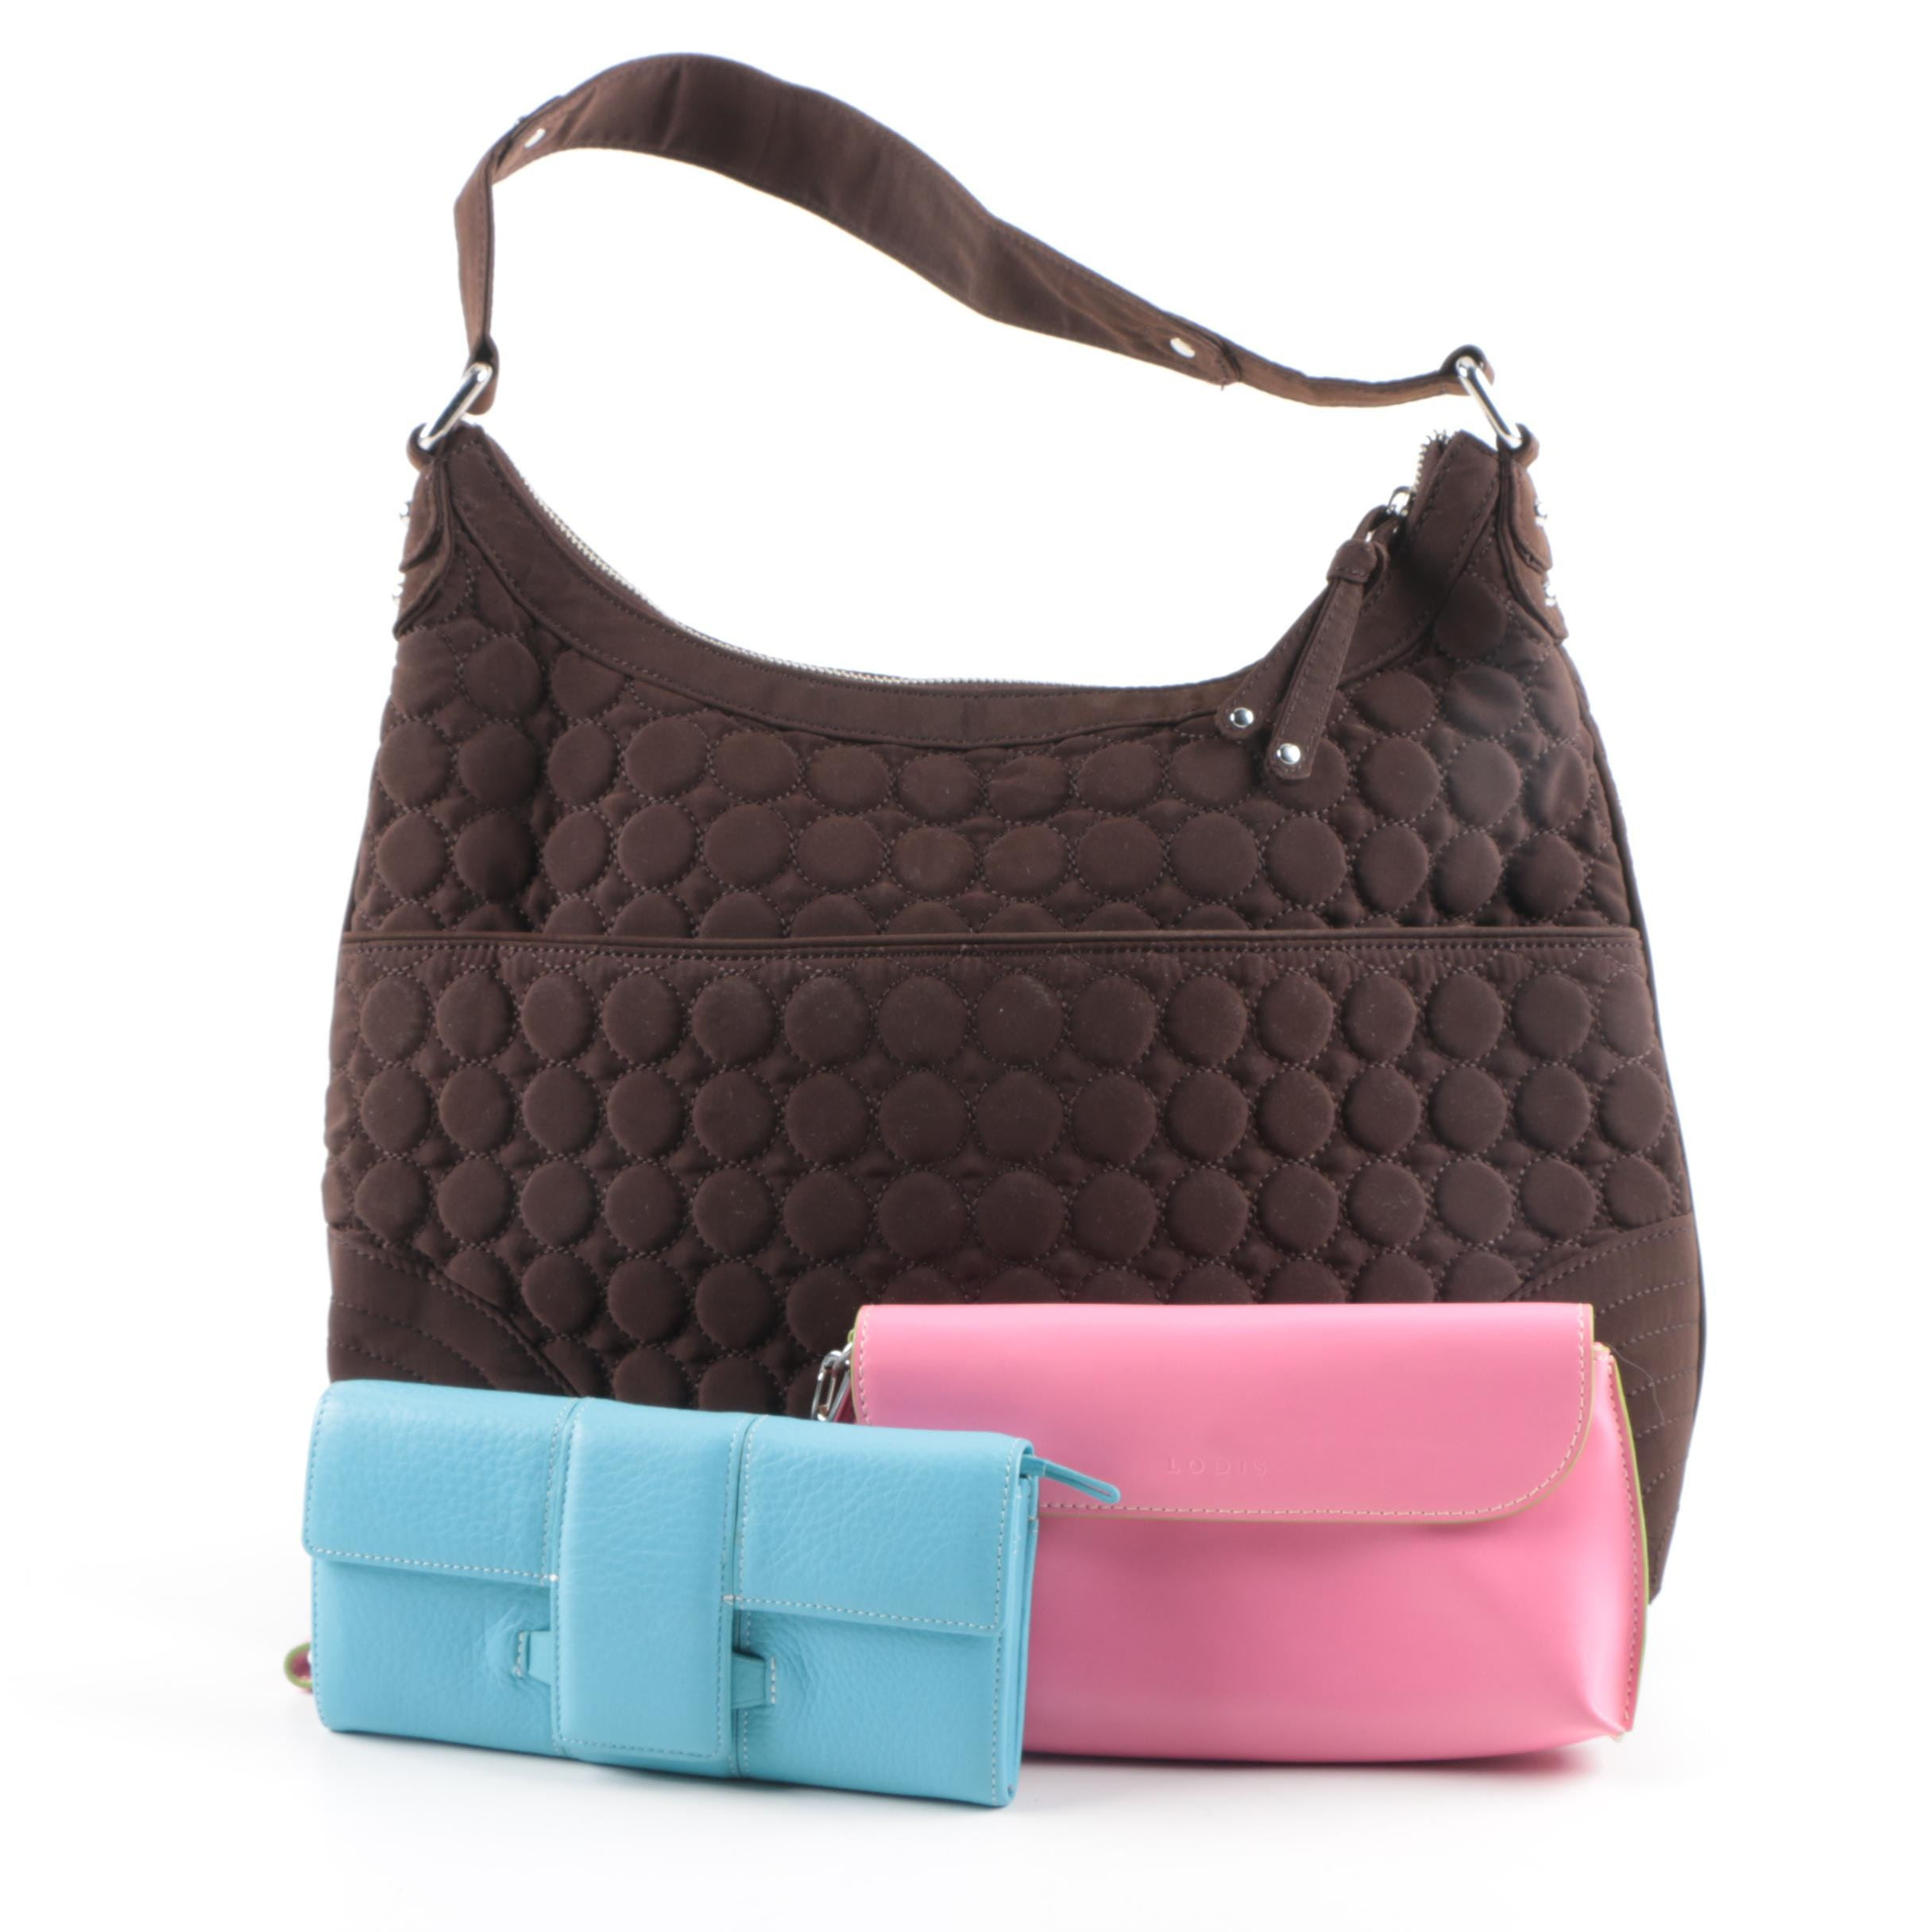 Quilted Hobo Handbag and Leather Wallets Featuring Vera Bradley